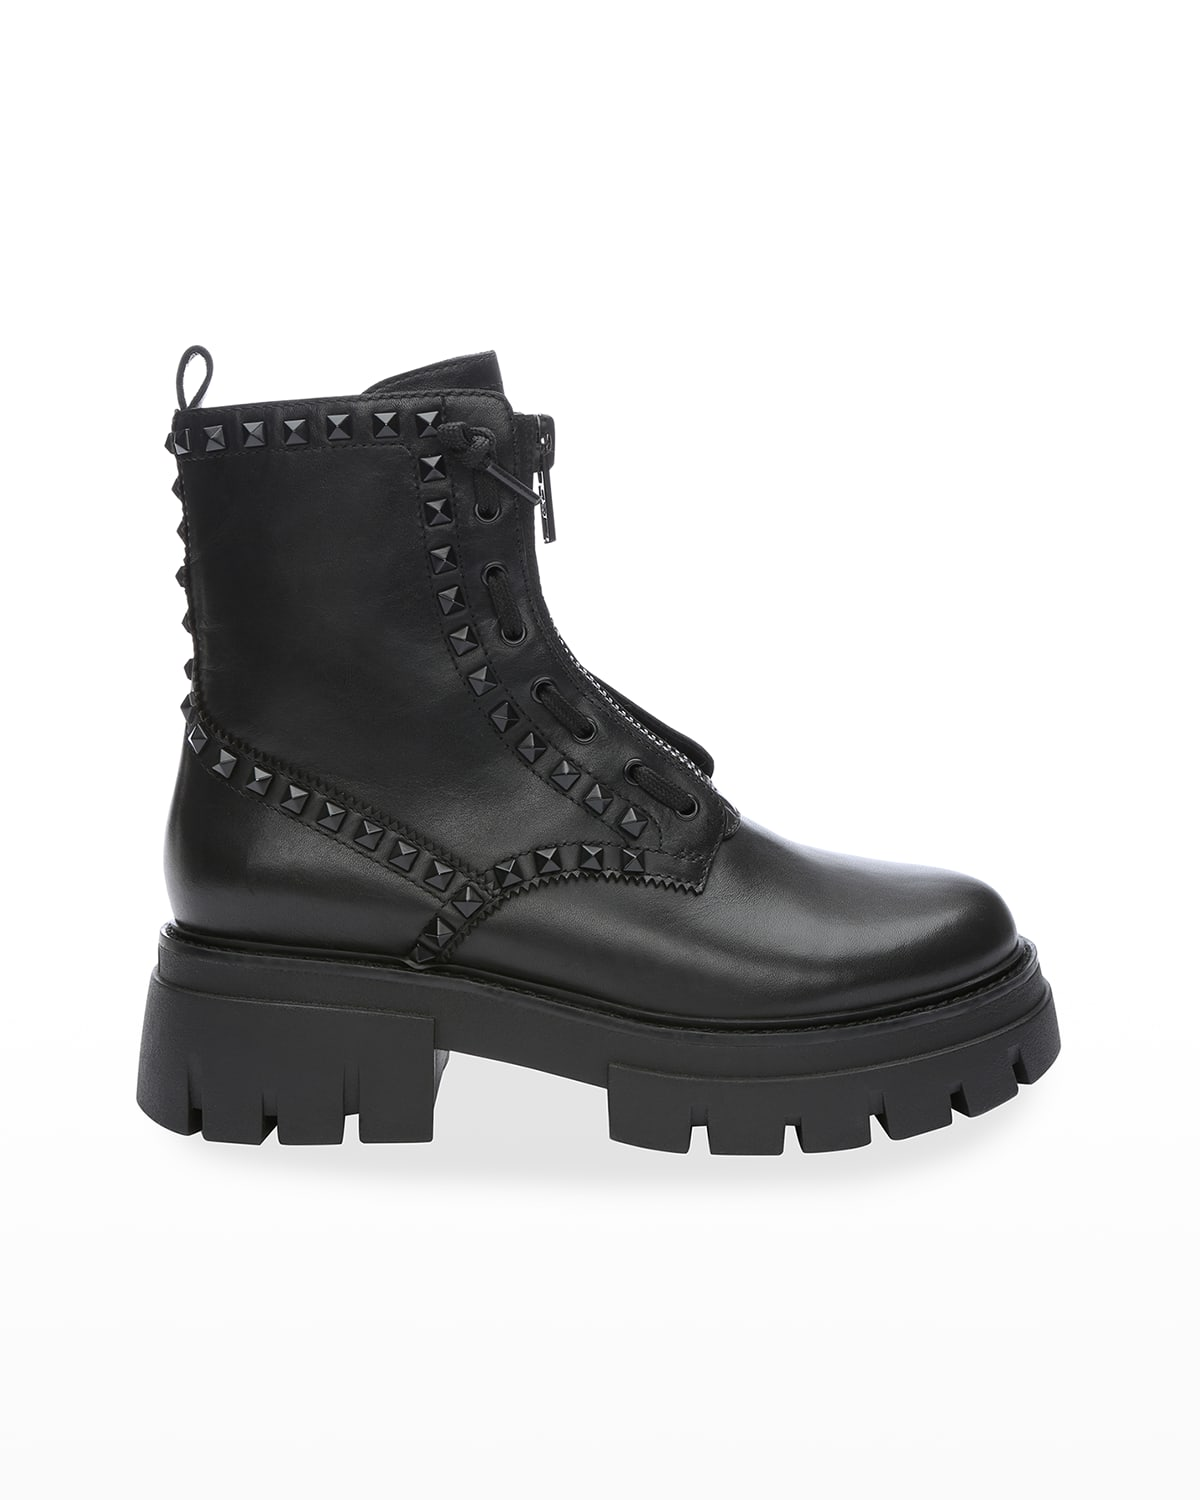 Lynch Studded Leather Zip Combat Booties